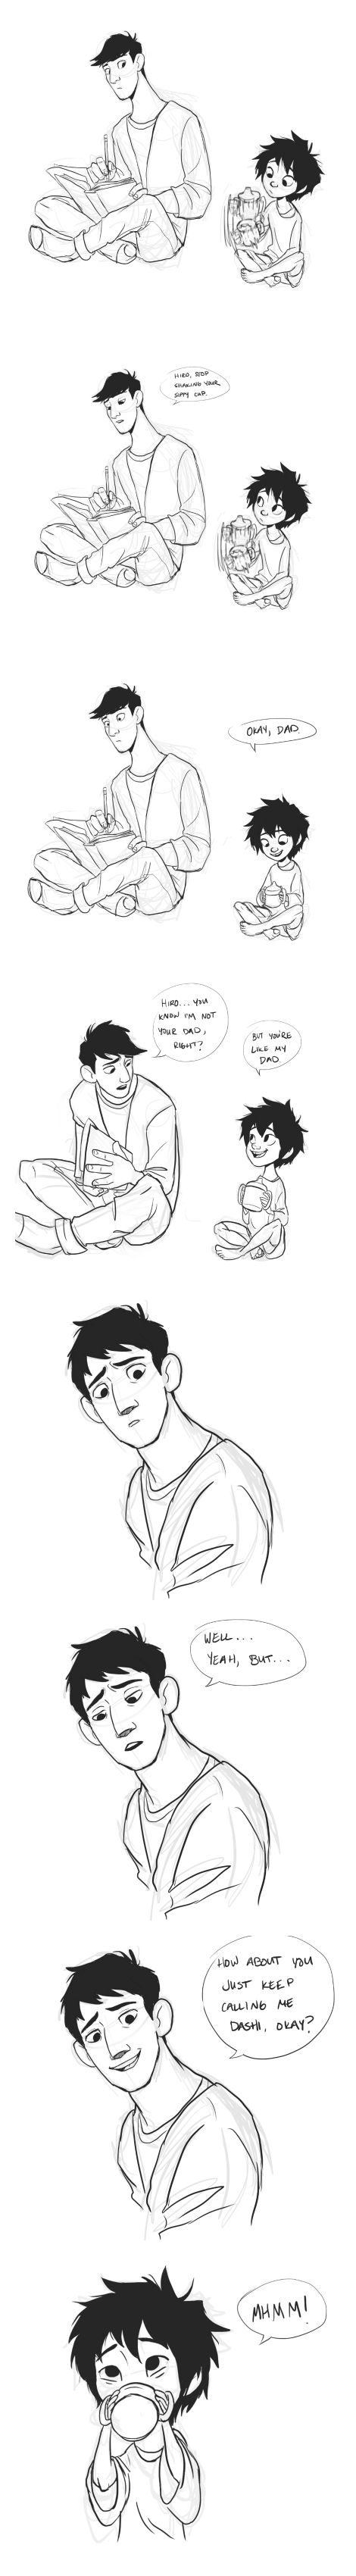 pronation running shoes Baby Hiro and awesome Tadashi